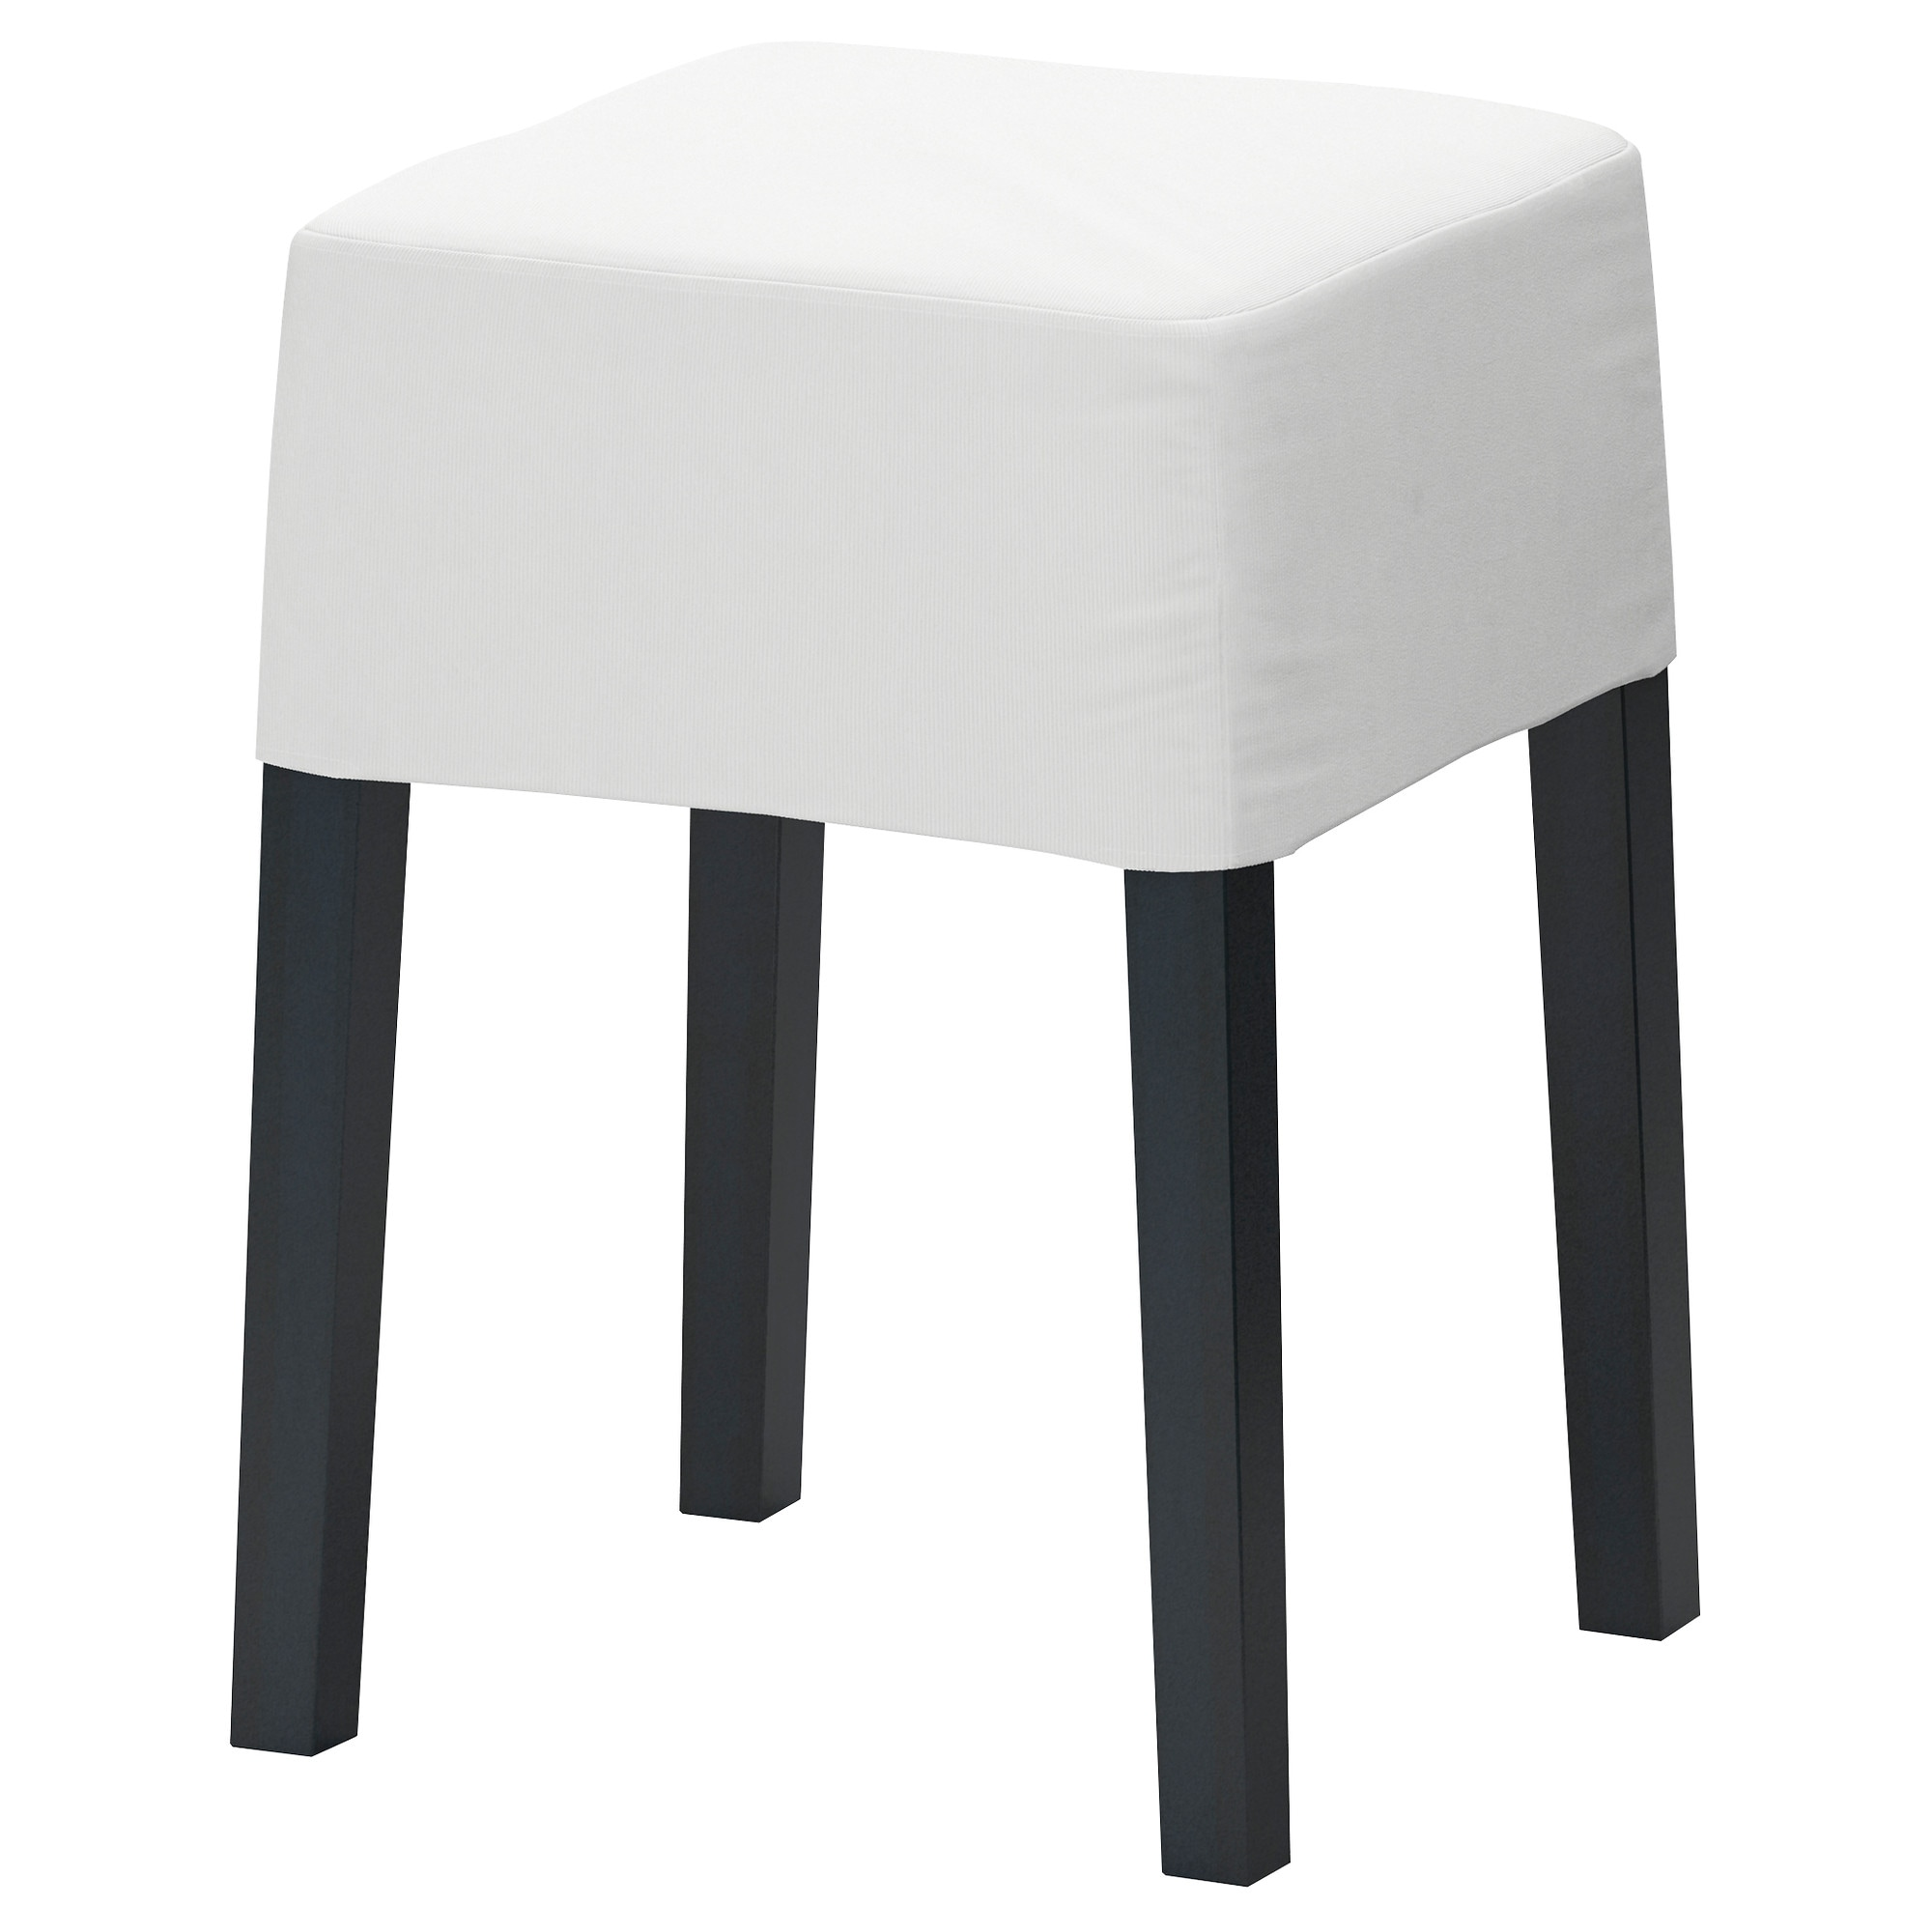 NILS stool black Blekinge white Tested for 243 lb Seat width 13  sc 1 st  Ikea : seating stool - islam-shia.org